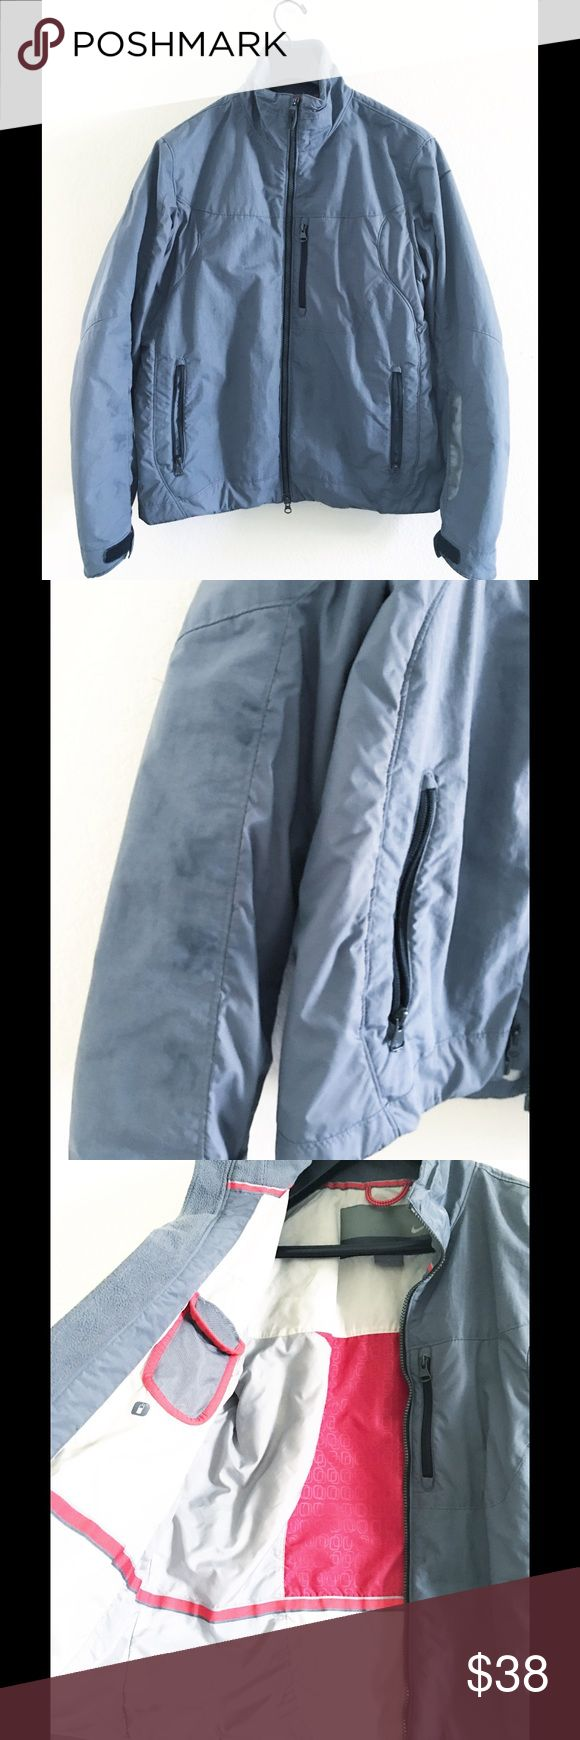 Nike Waterproof Jacket szM Men's VGUC, dark spots on arm as shown, blends in when worn. Great utility jacket with lots of pockets. Thick windbreaker type material exterior. Nike Jackets & Coats Performance Jackets